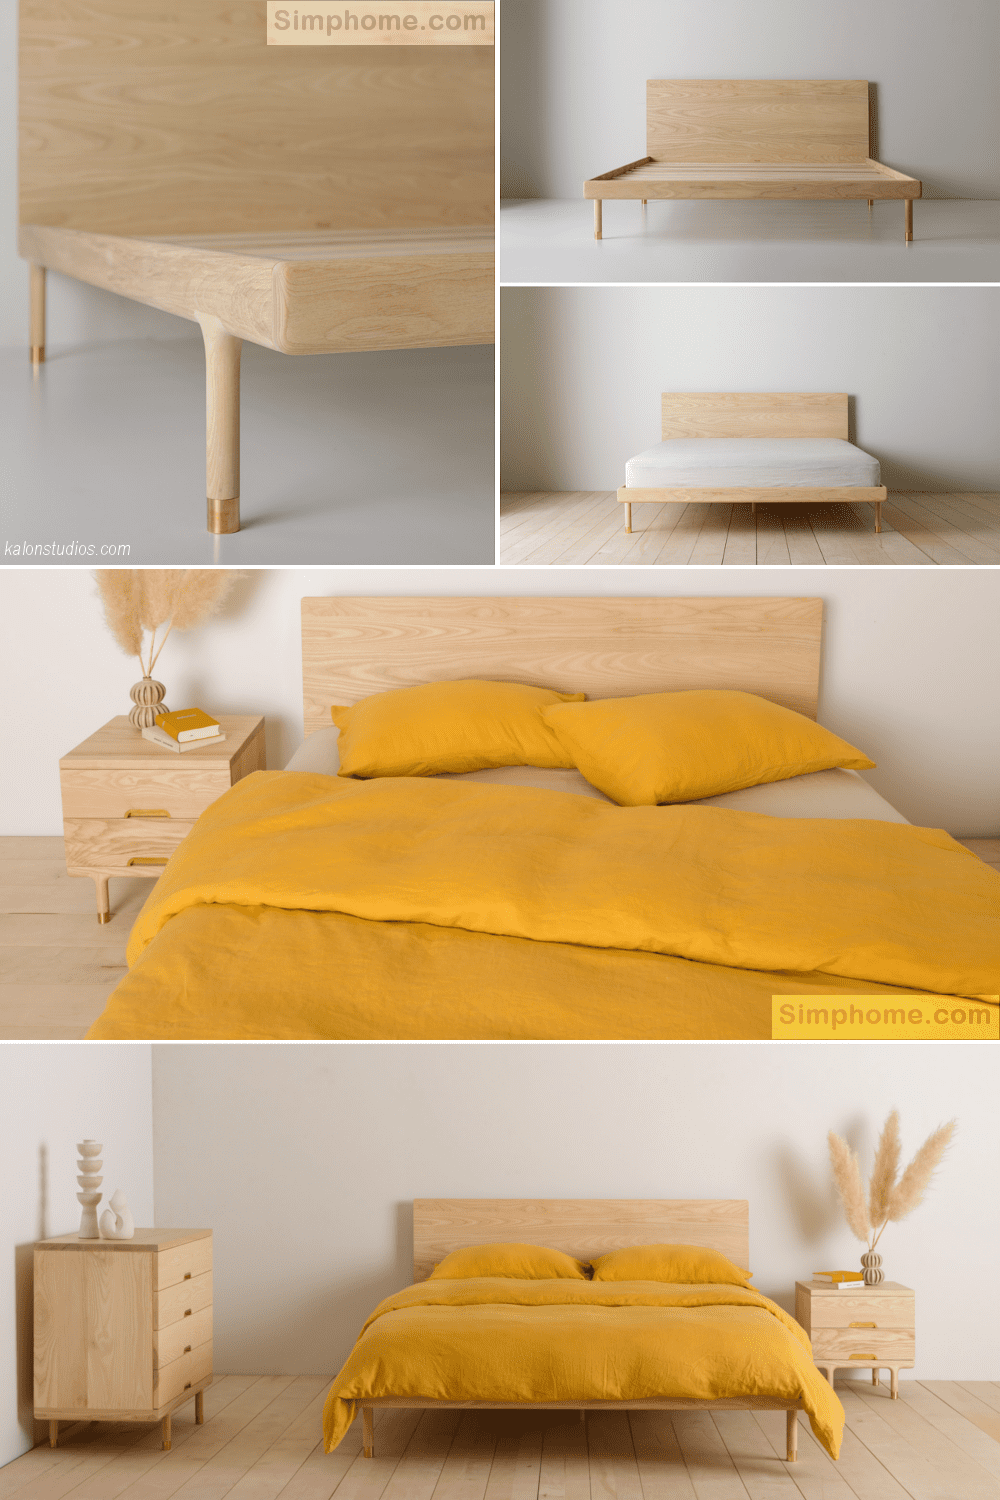 10.Simple yet Classy Bed Ideas